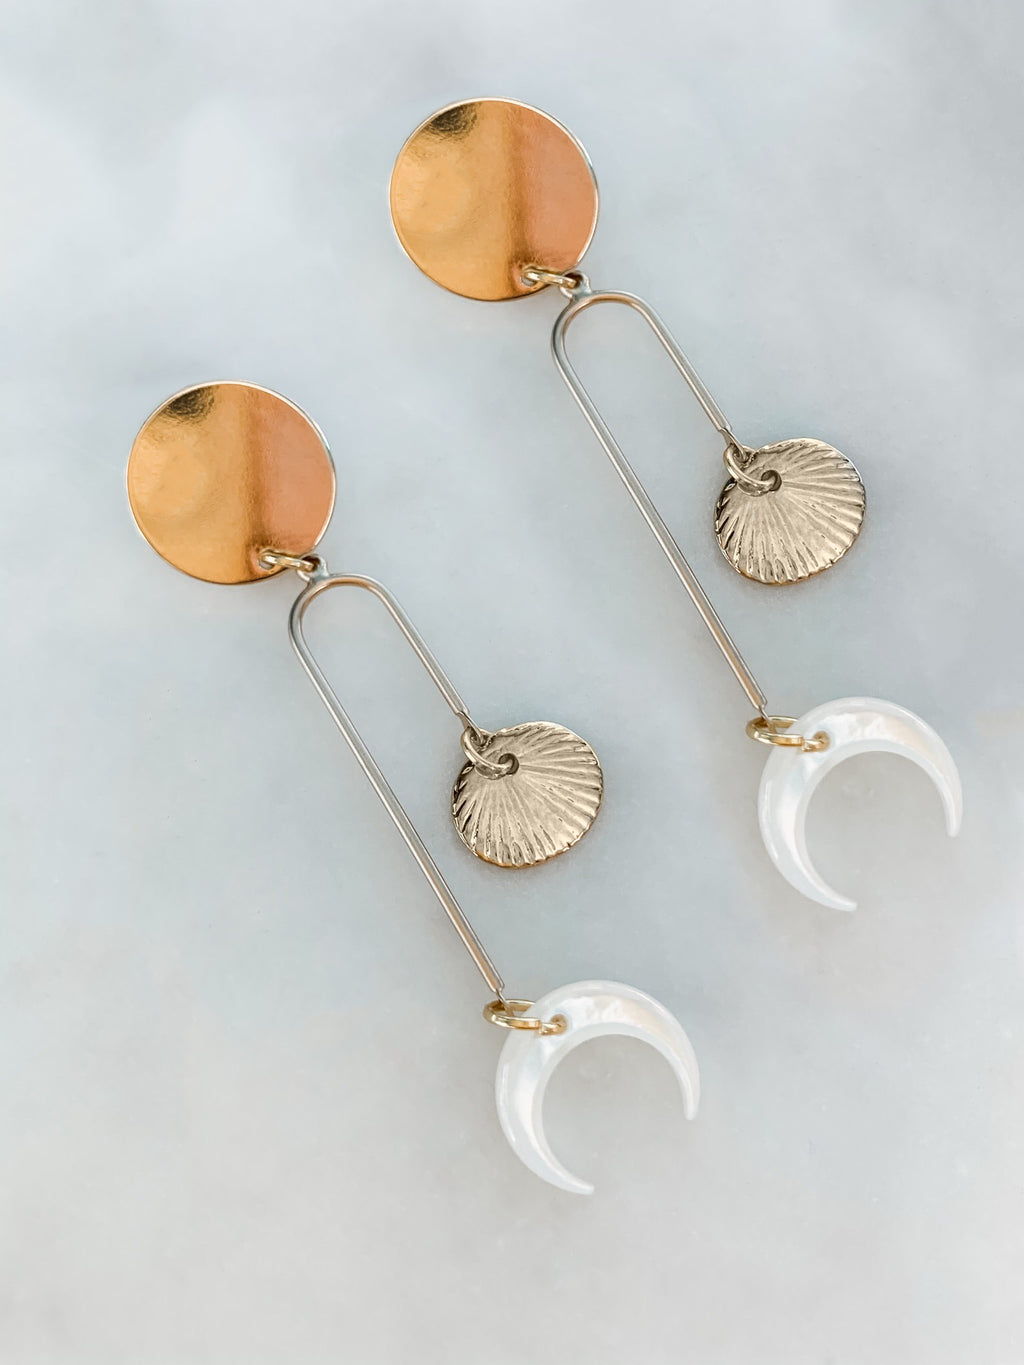 Luna - Pearl Moon and Shell Earrings - The Pretty Eclectic